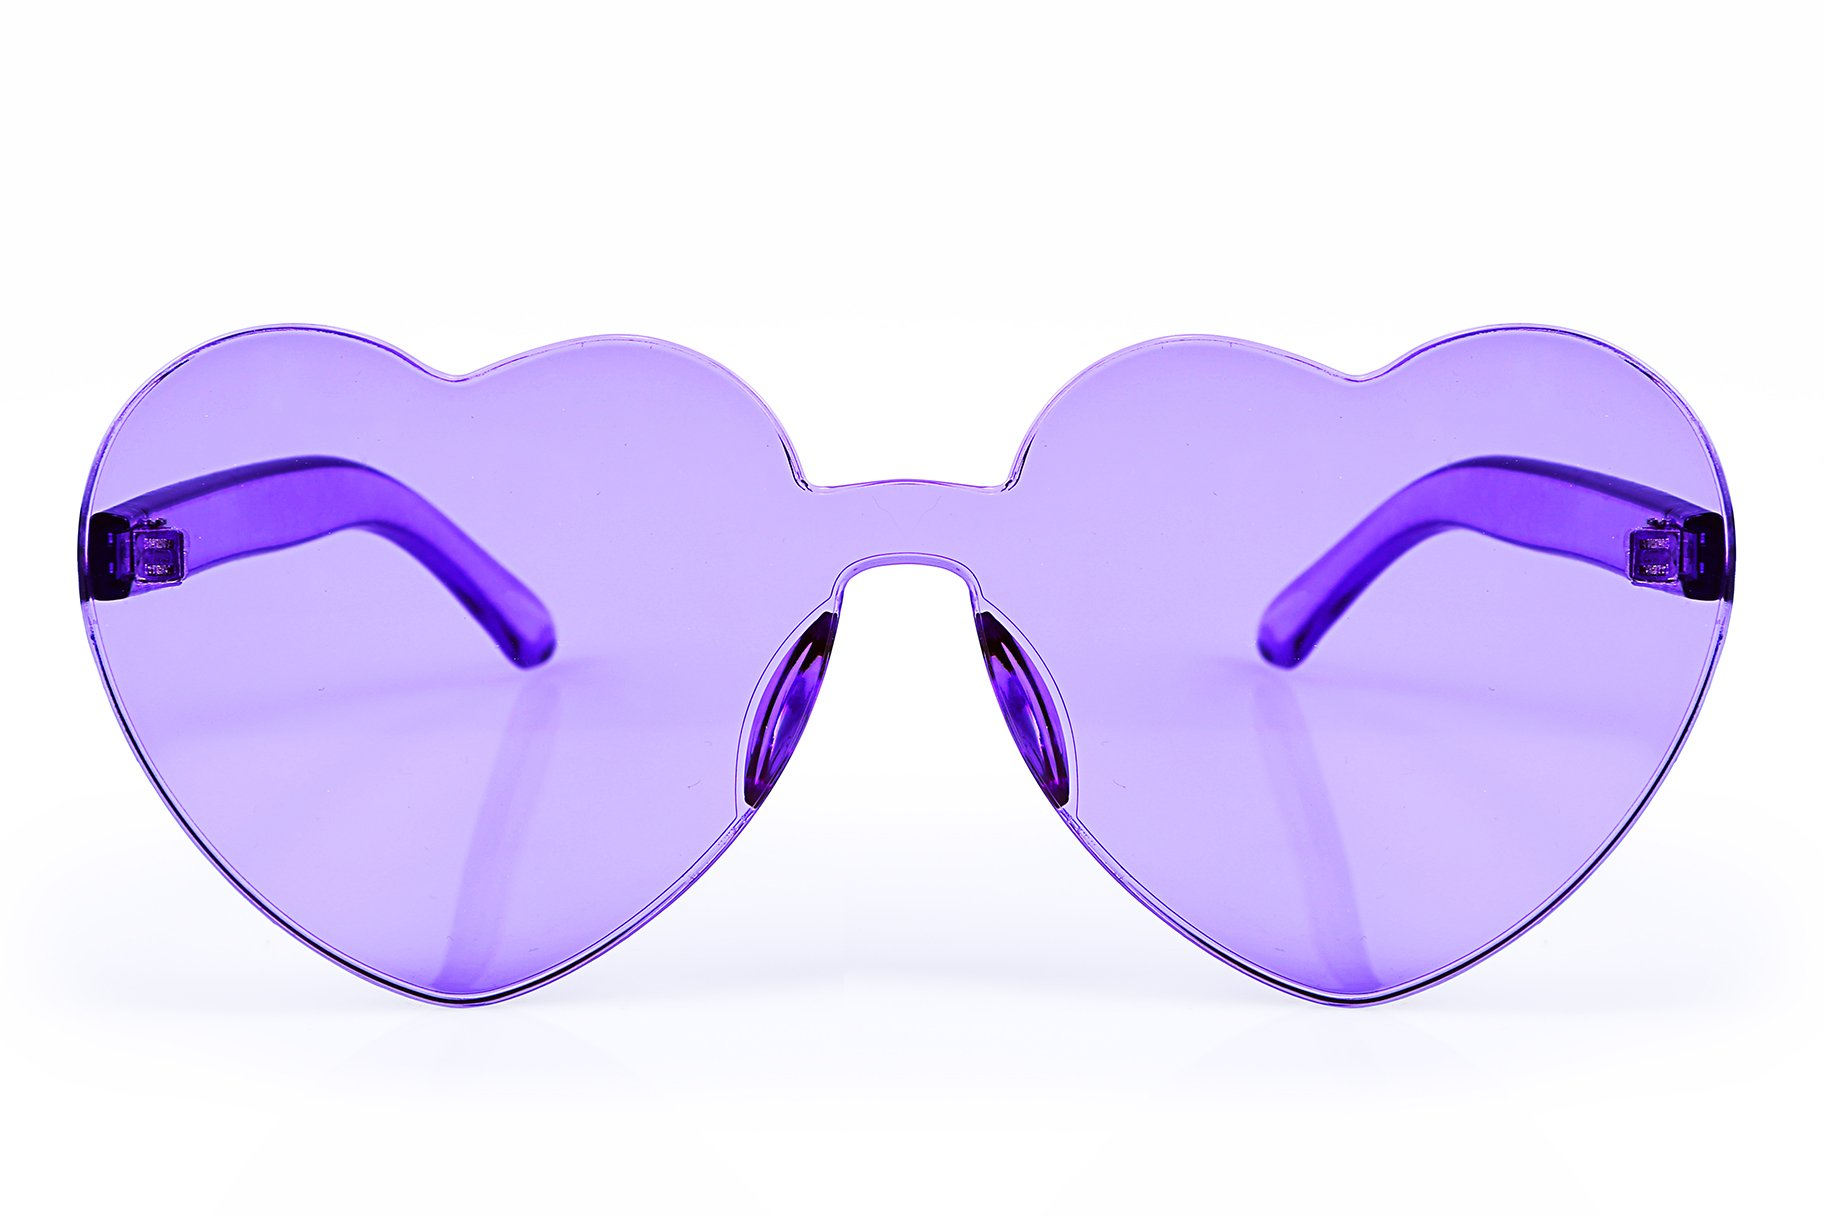 FEISEDY Heart Shaped Love Sunglasses Rimless One Piece Stylish Transparent Lens B2419 by FEISEDY (Image #2)